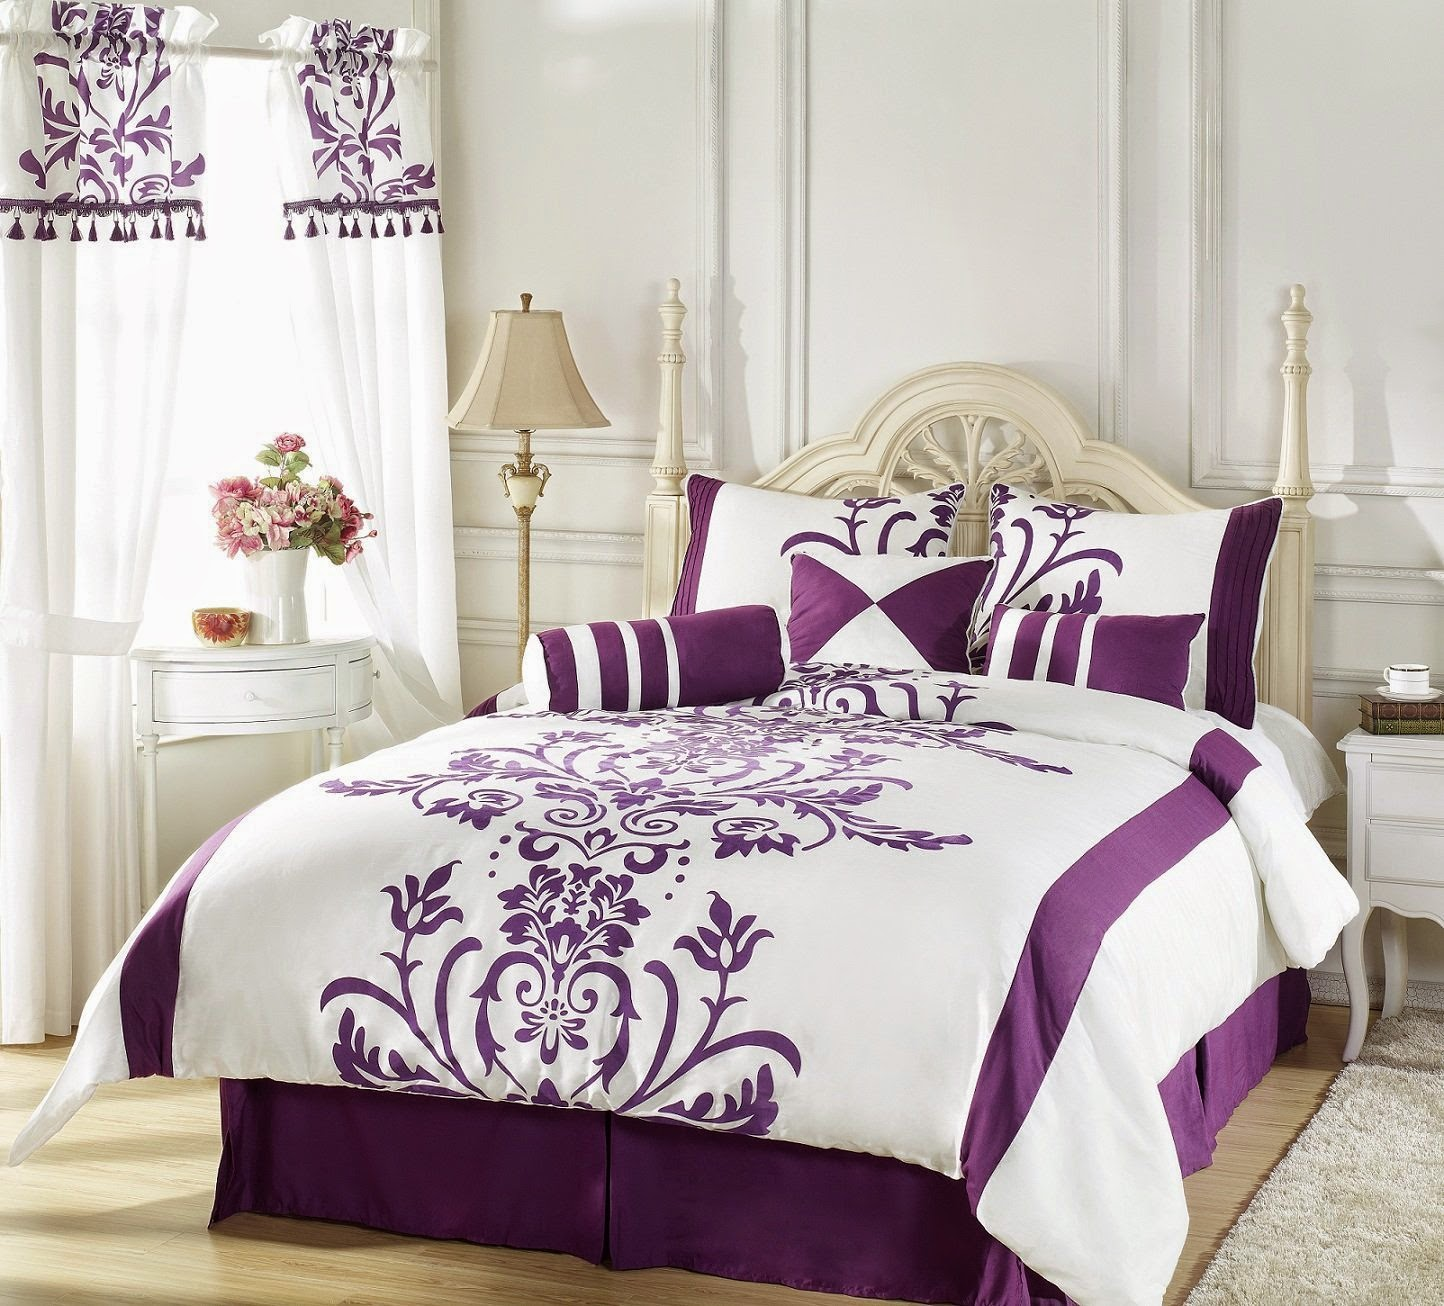 decorating ideas wall paint living rooms turquoise bedroom decors art january 2013. Black Bedroom Furniture Sets. Home Design Ideas